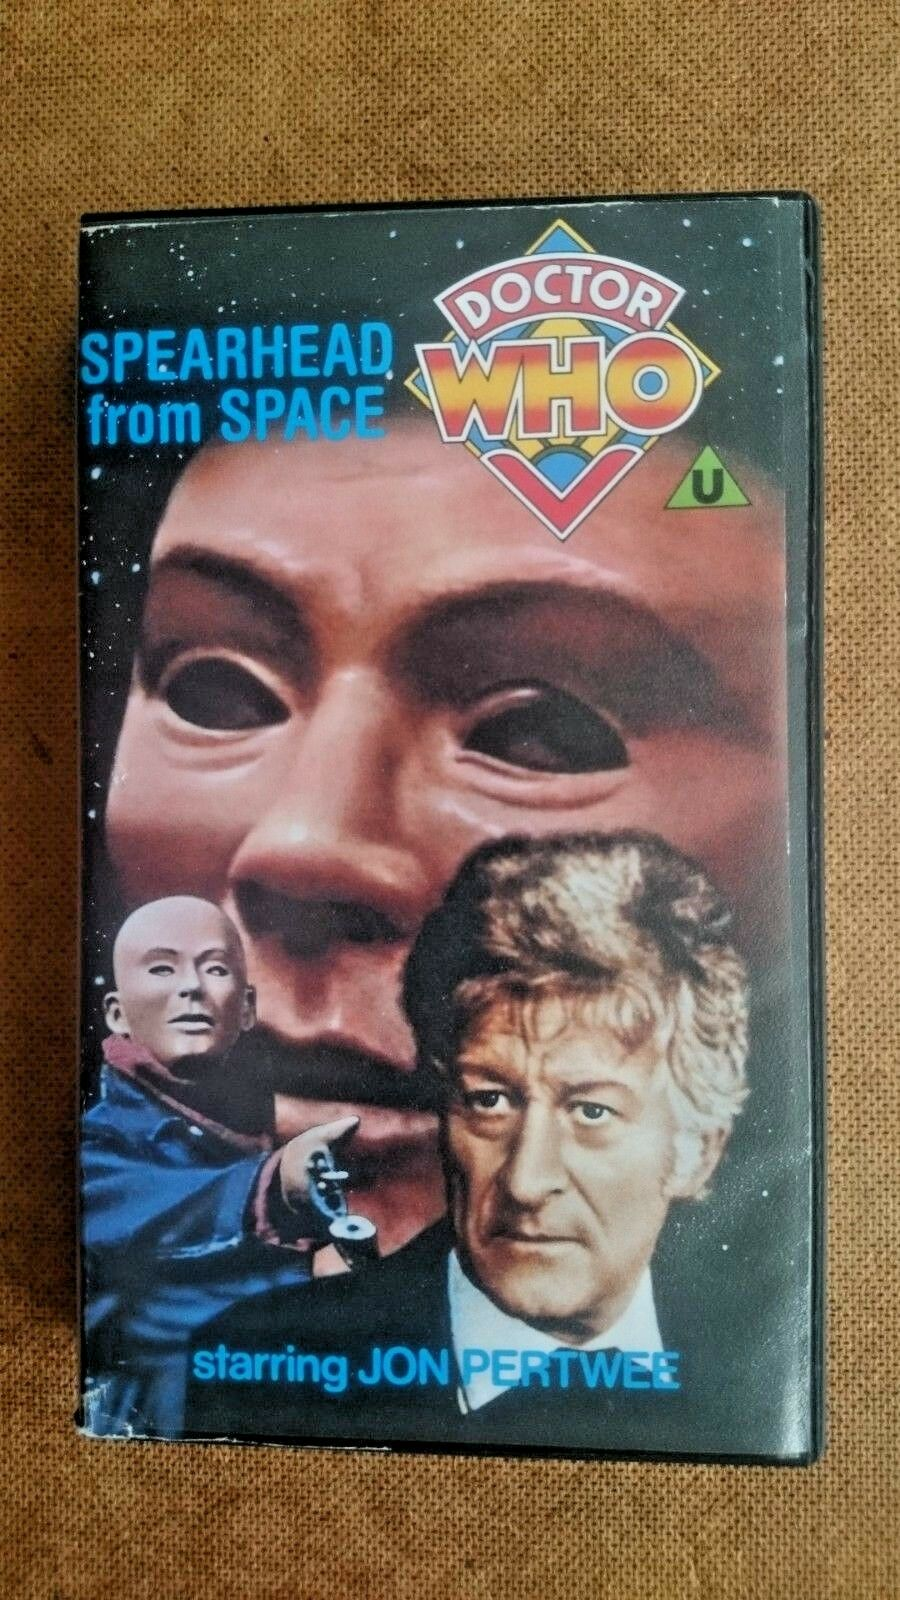 Doctor Who Spearhead from Space (VHS 1988)  Jon Pertwee